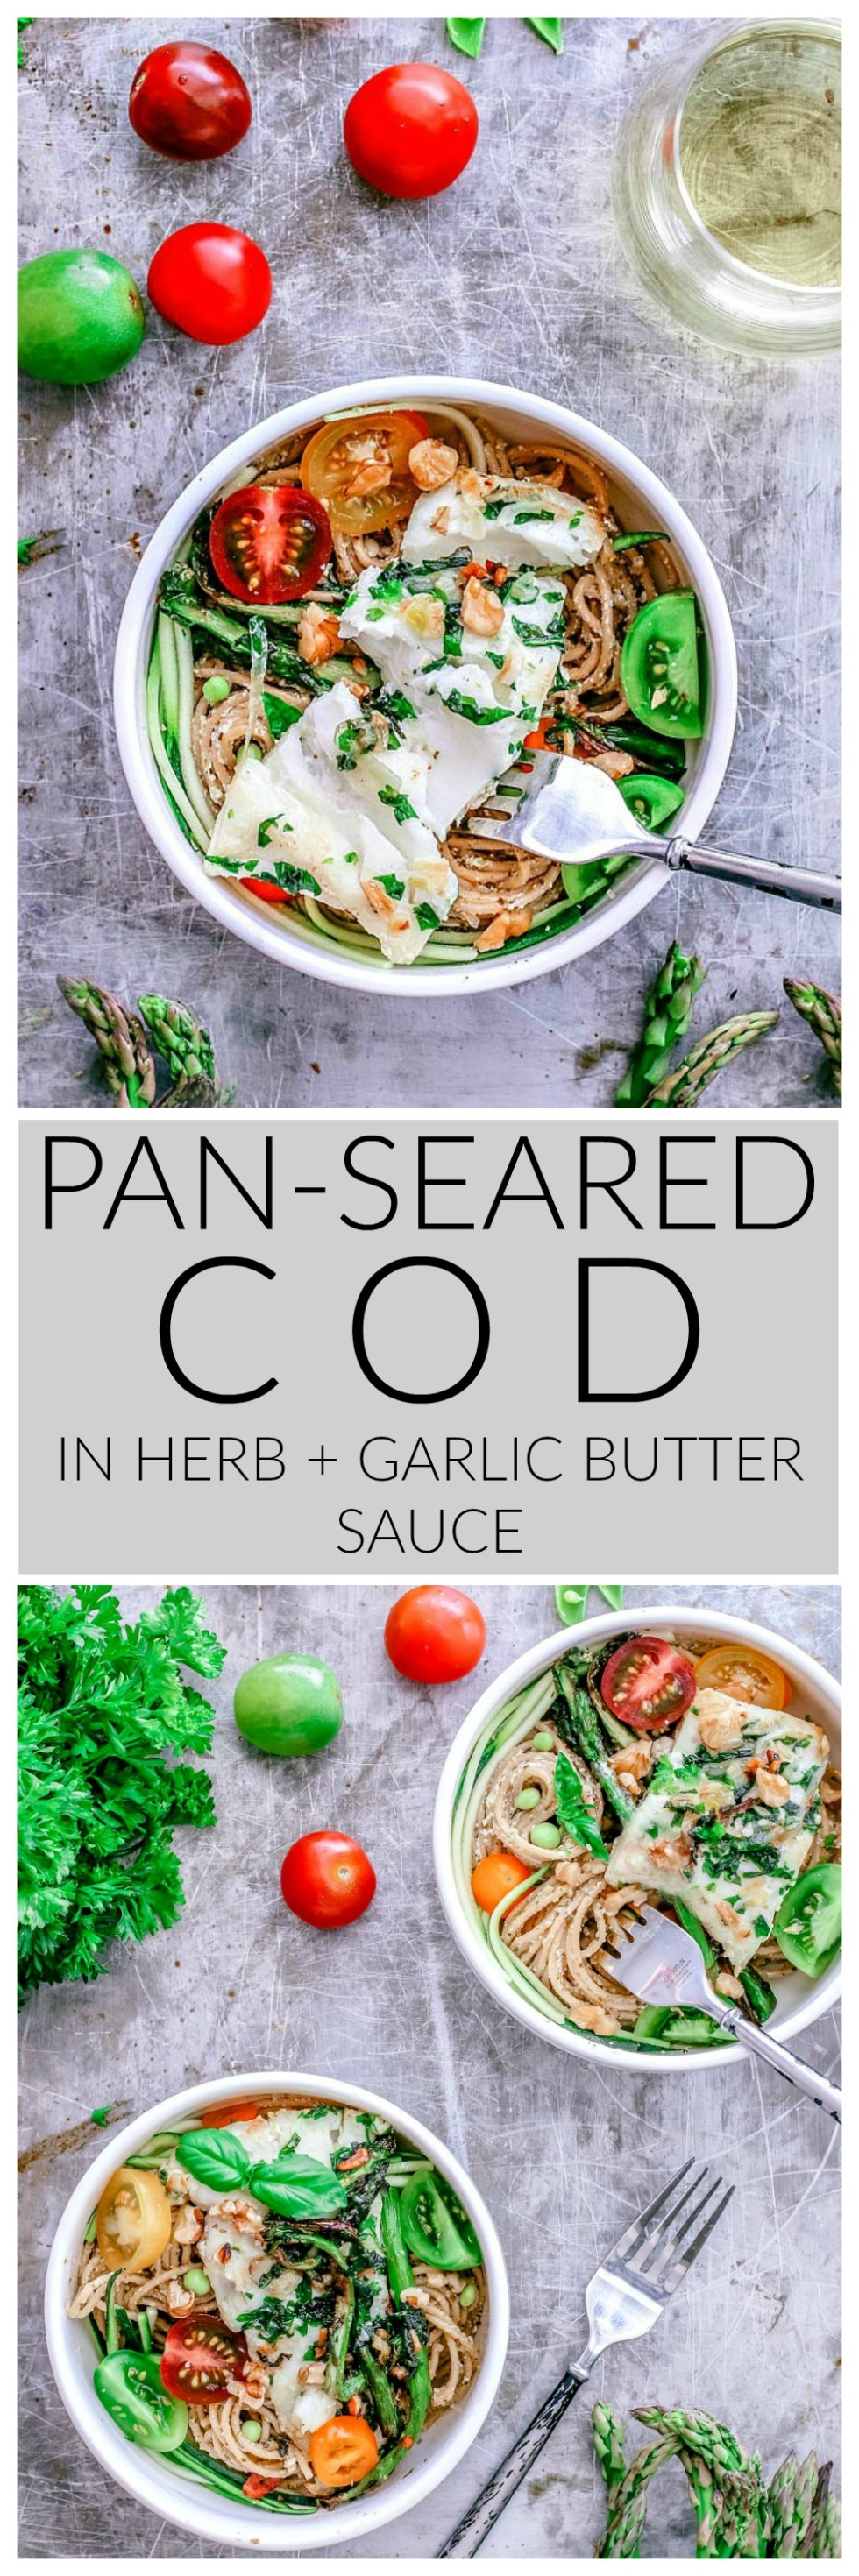 Pan-Seared Cod in Herb and Garlic Butter Sauce With Pesto Pasta | Killing Thyme